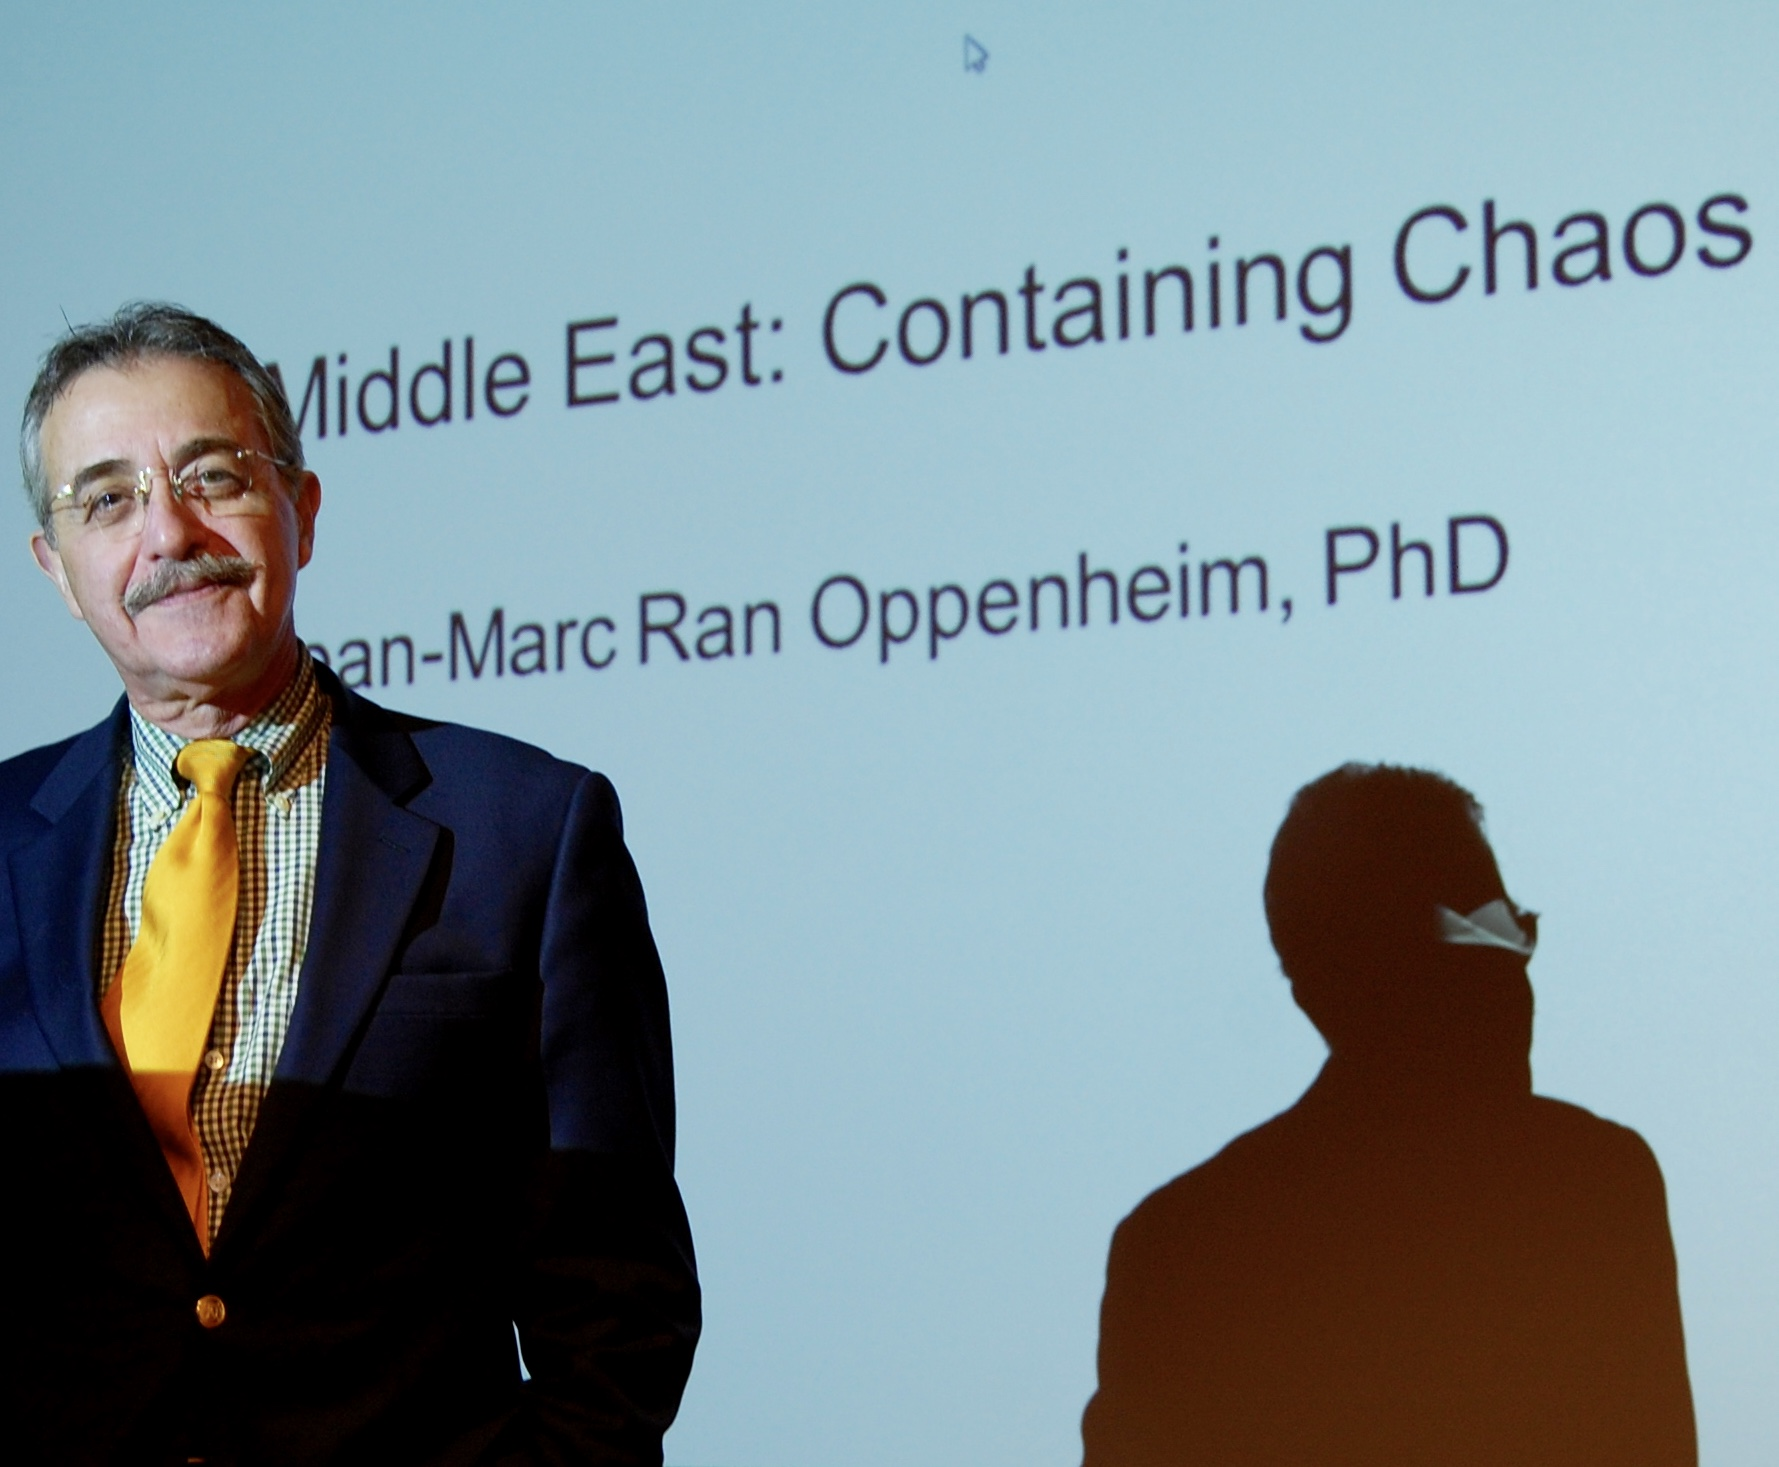 Professor Jean Marc Oppenheim's course on the Middle East: Containing Chaos